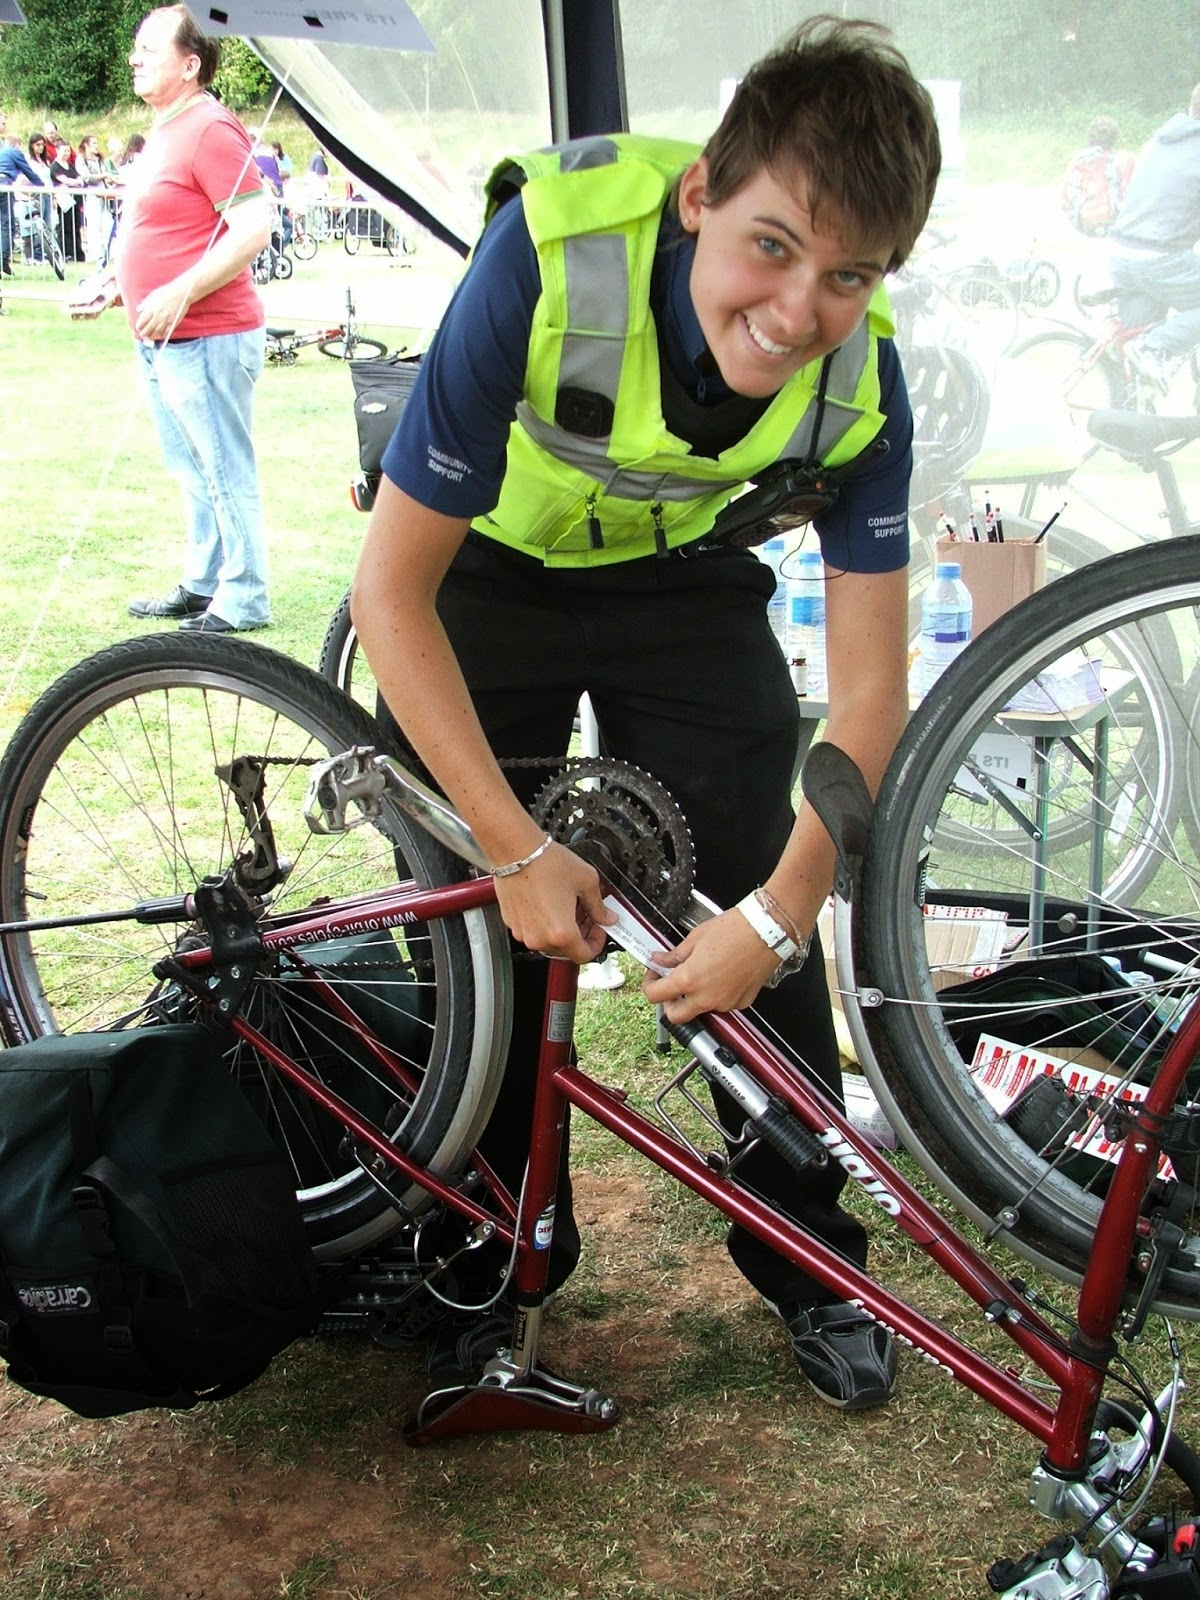 Cycle security marking